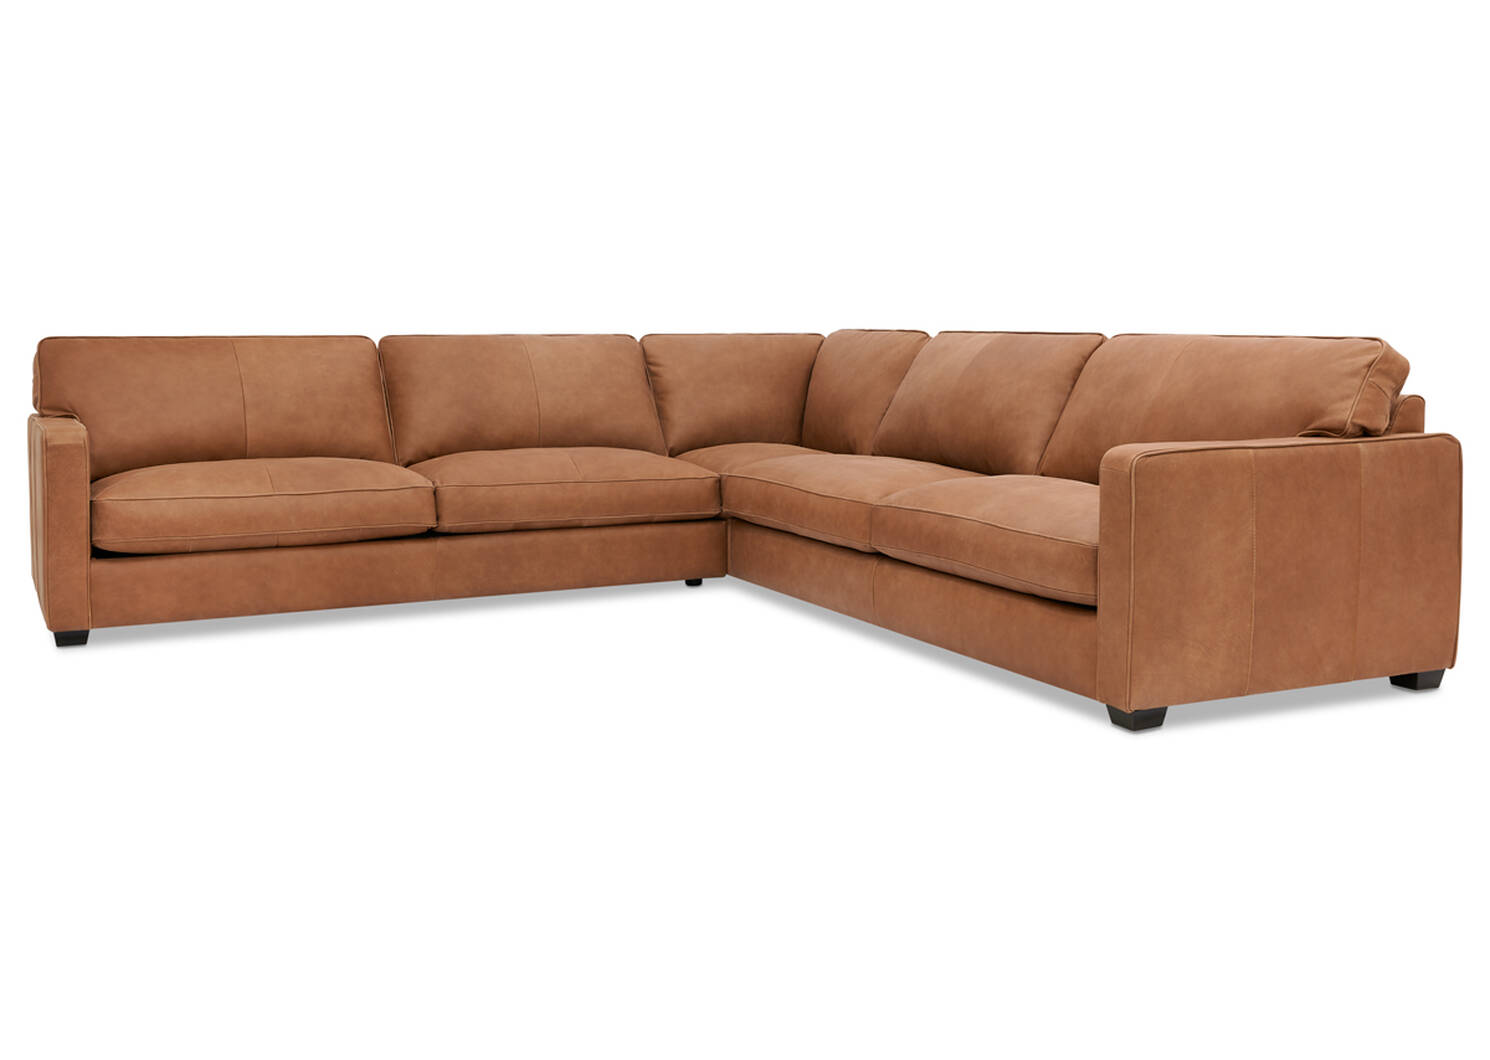 Burke Custom Leather Sectional